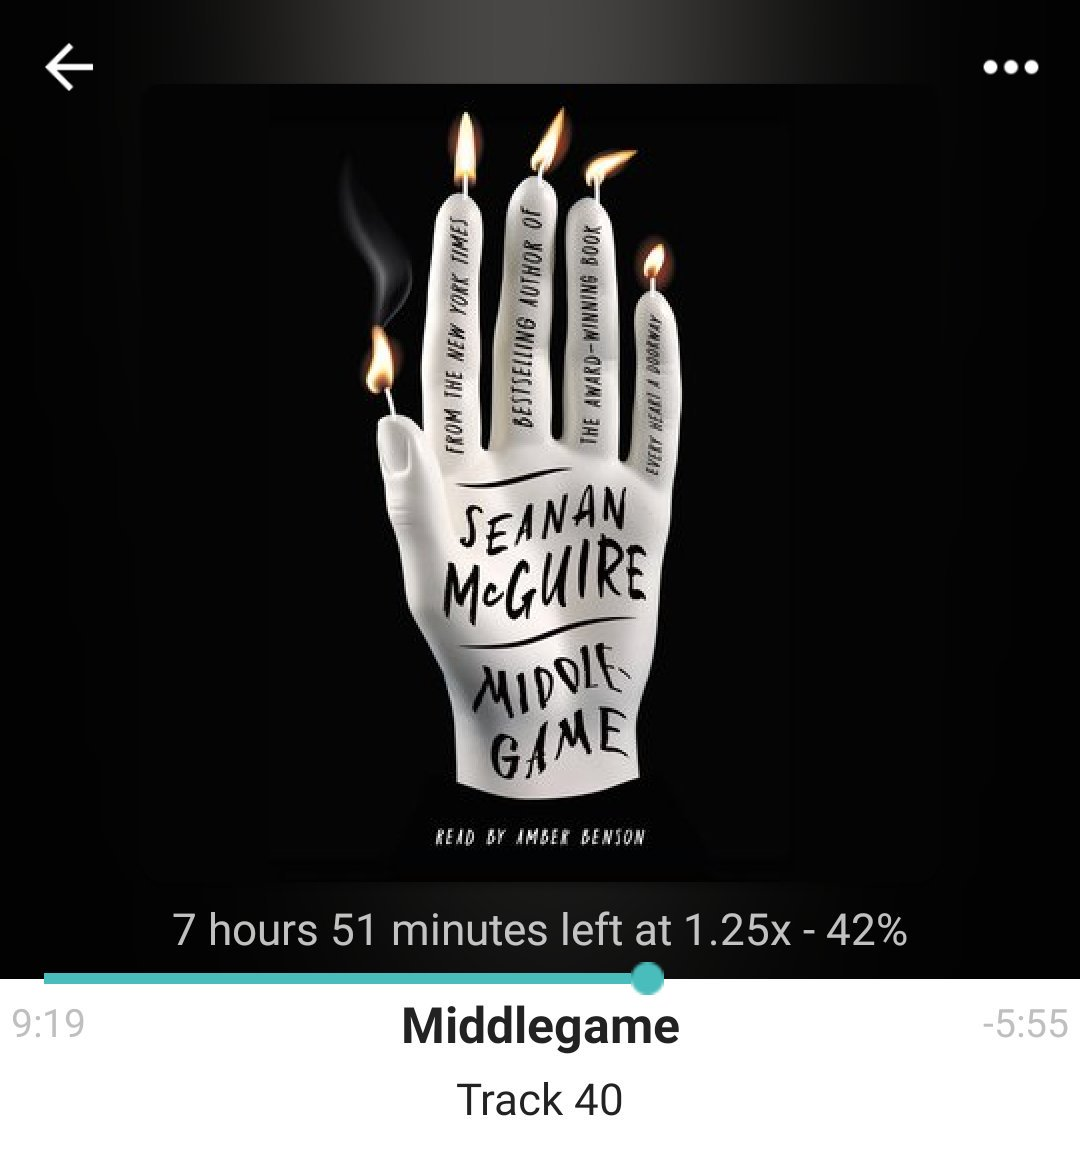 Completely sucked in to my #FridayReads : Middlegame by @seananmcguire #FridayListens